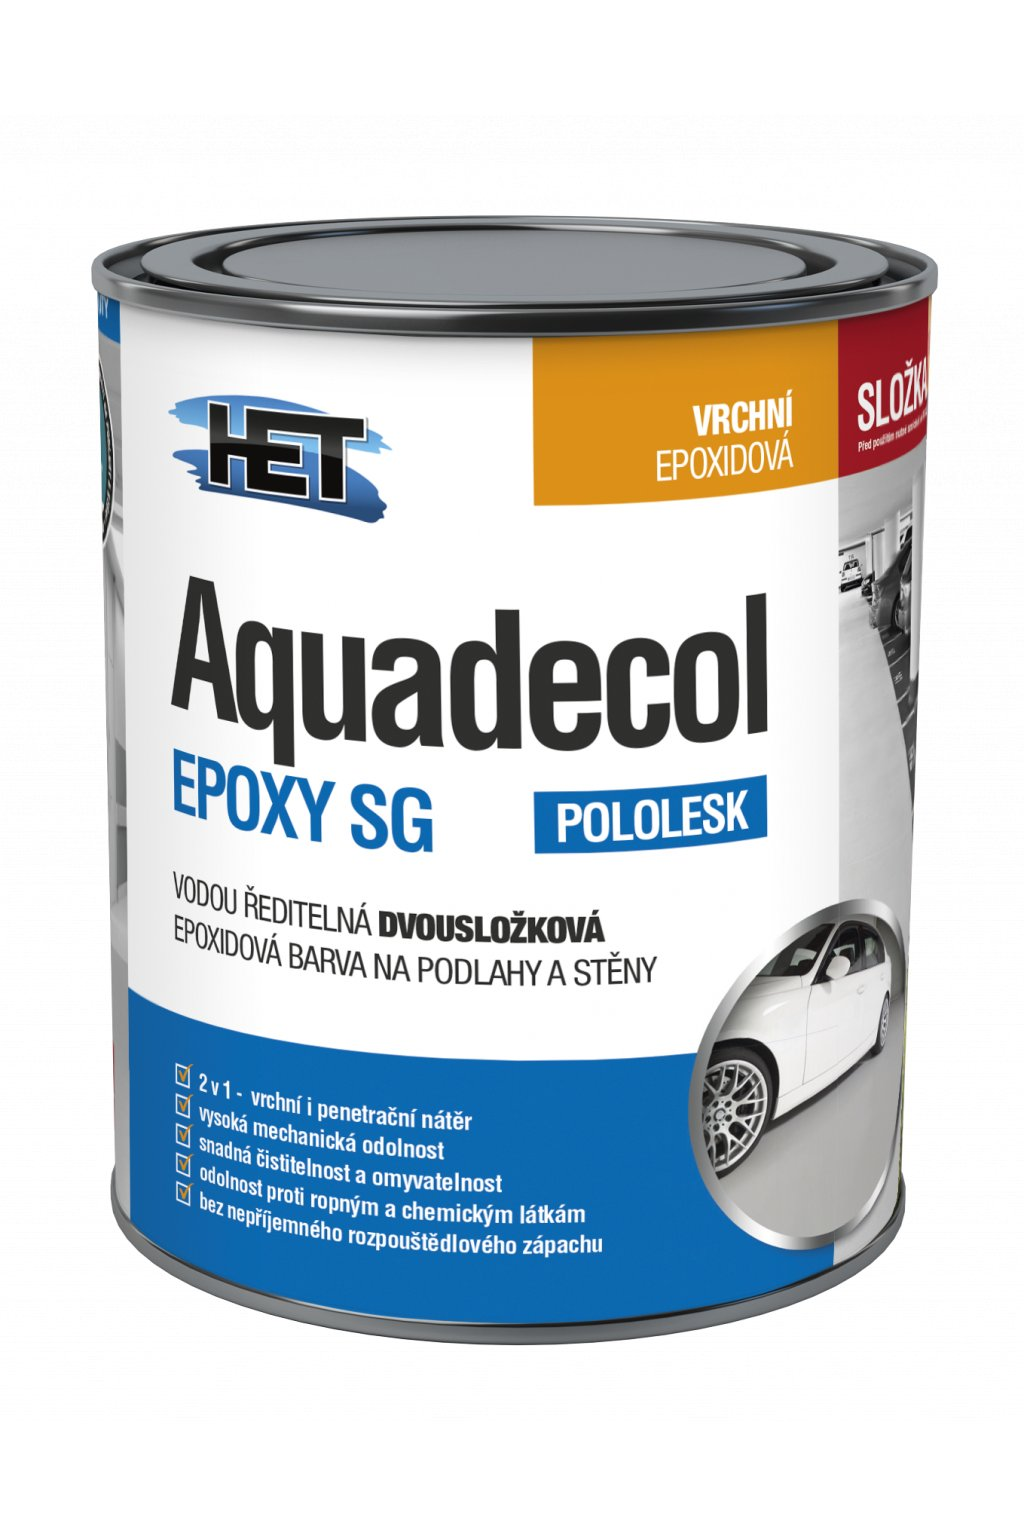 Aquadecol Epoxy SG